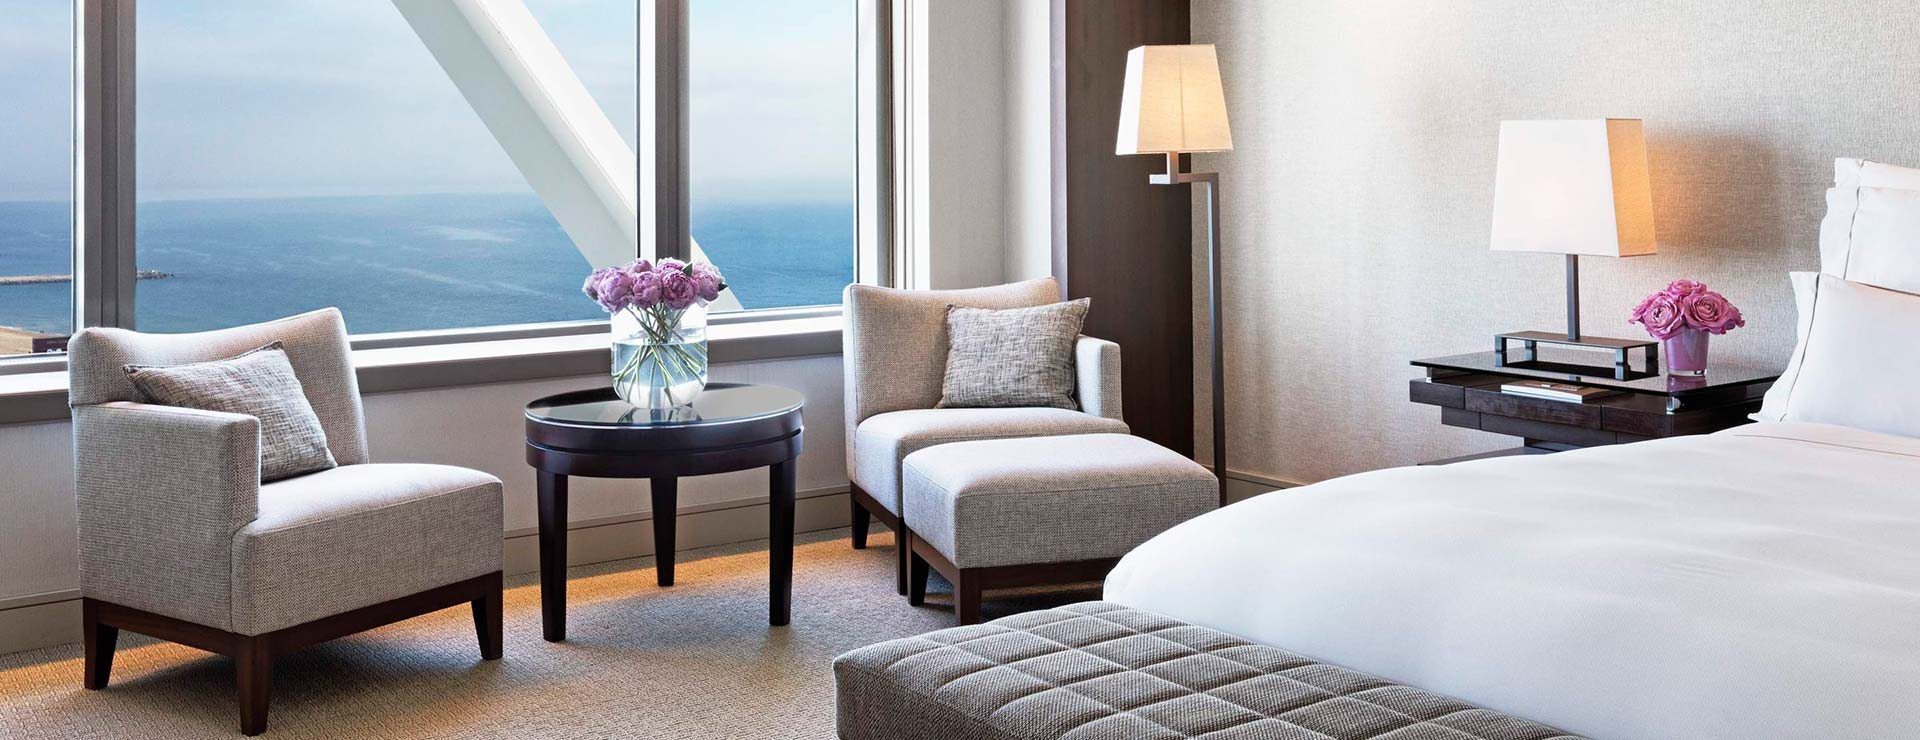 Deluxe Sea View Room Guests Rooms Hotel Arts